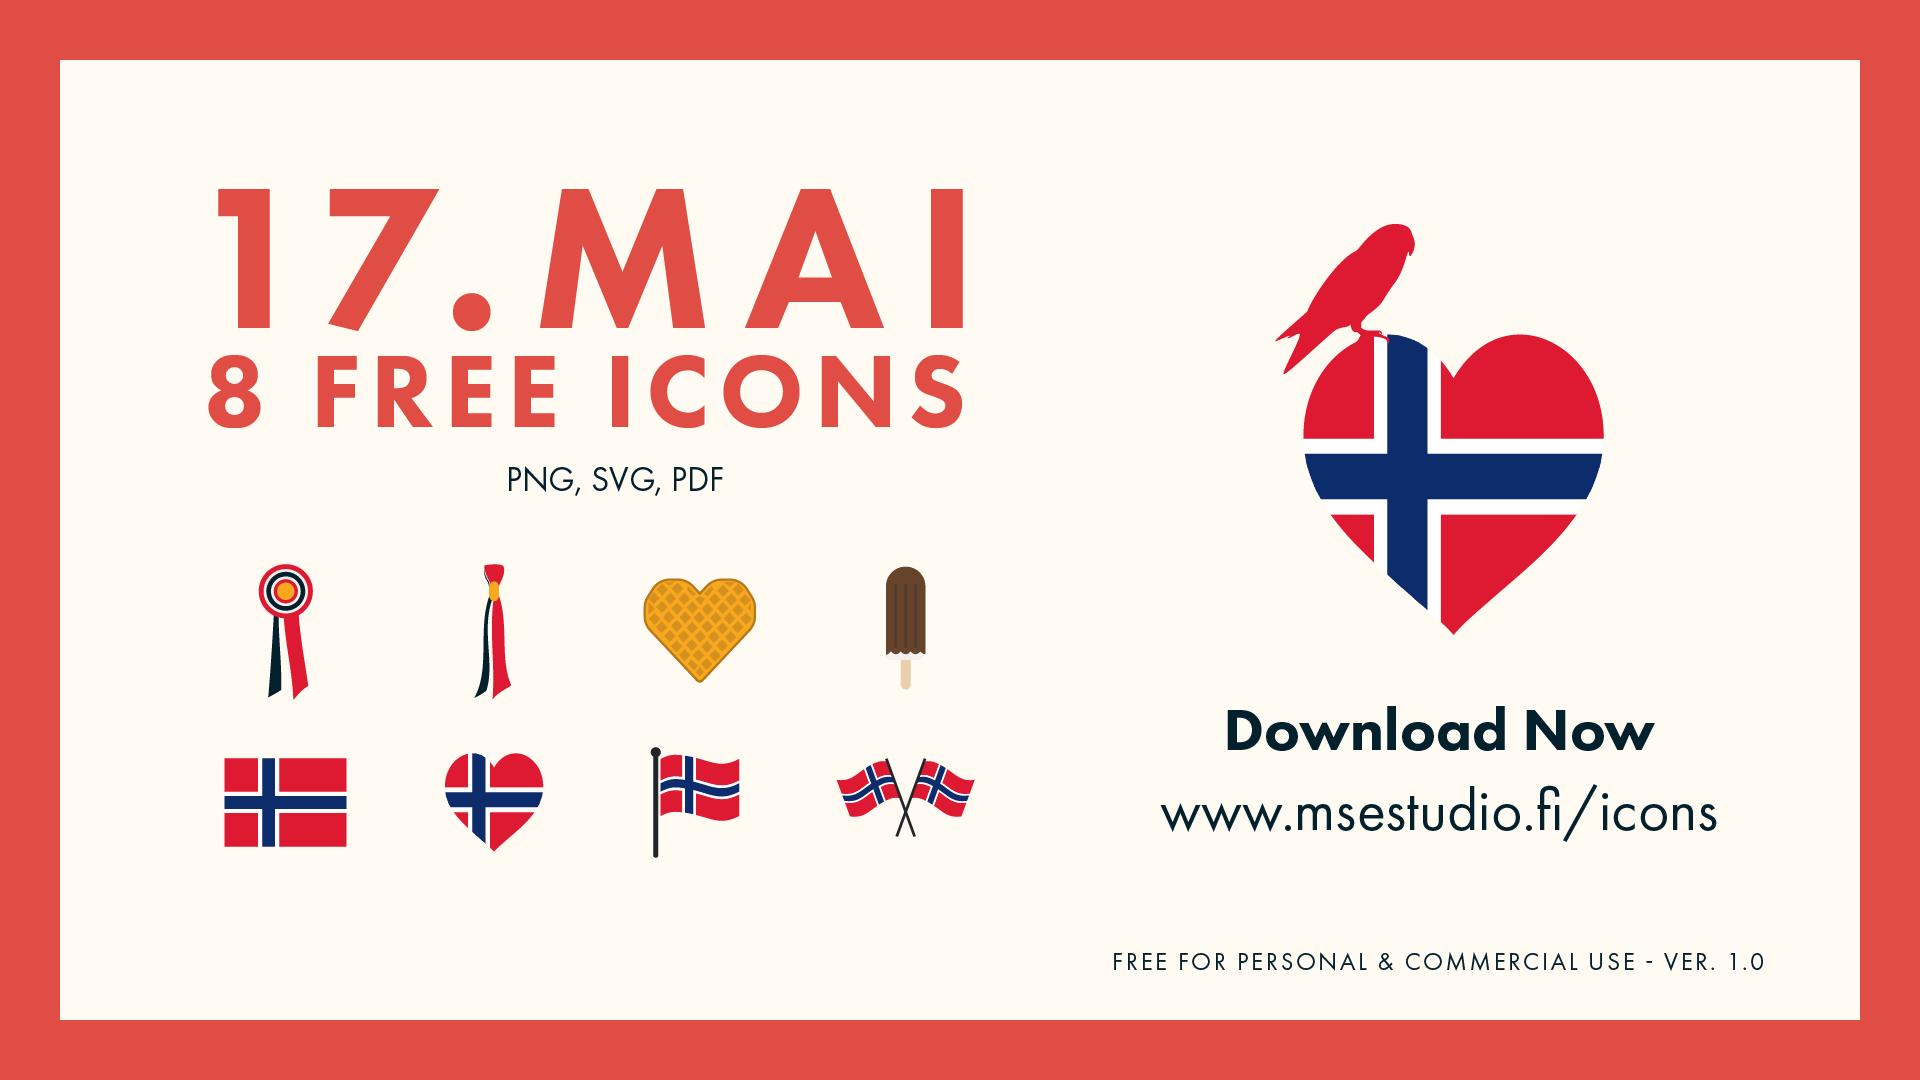 17.mai Icon Set - 8 Free Icons